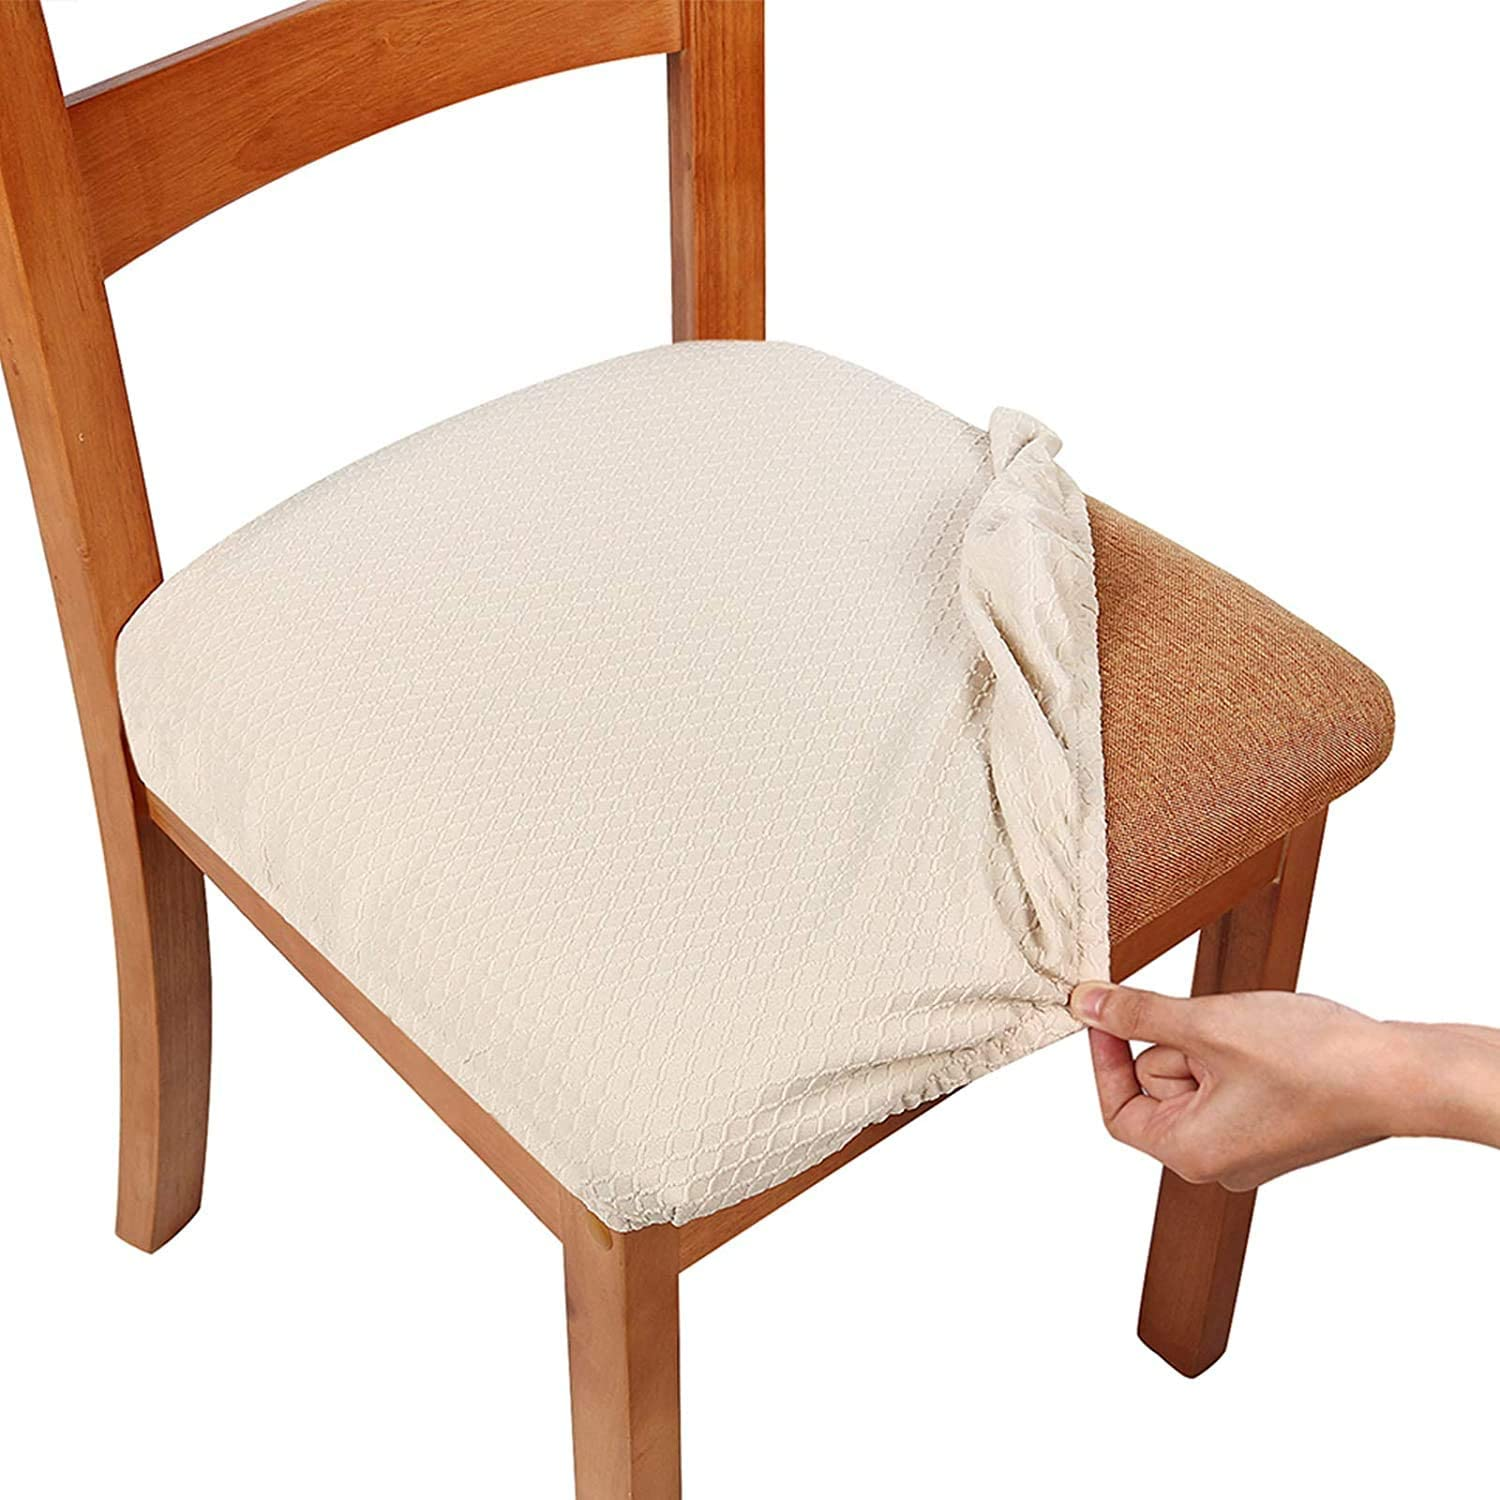 smiry Stretch Chair Seat Covers for Dining Room, Beige Set of 10 Jacquard  Dining Chair Seat Cushion Protectors Chair Slipcovers